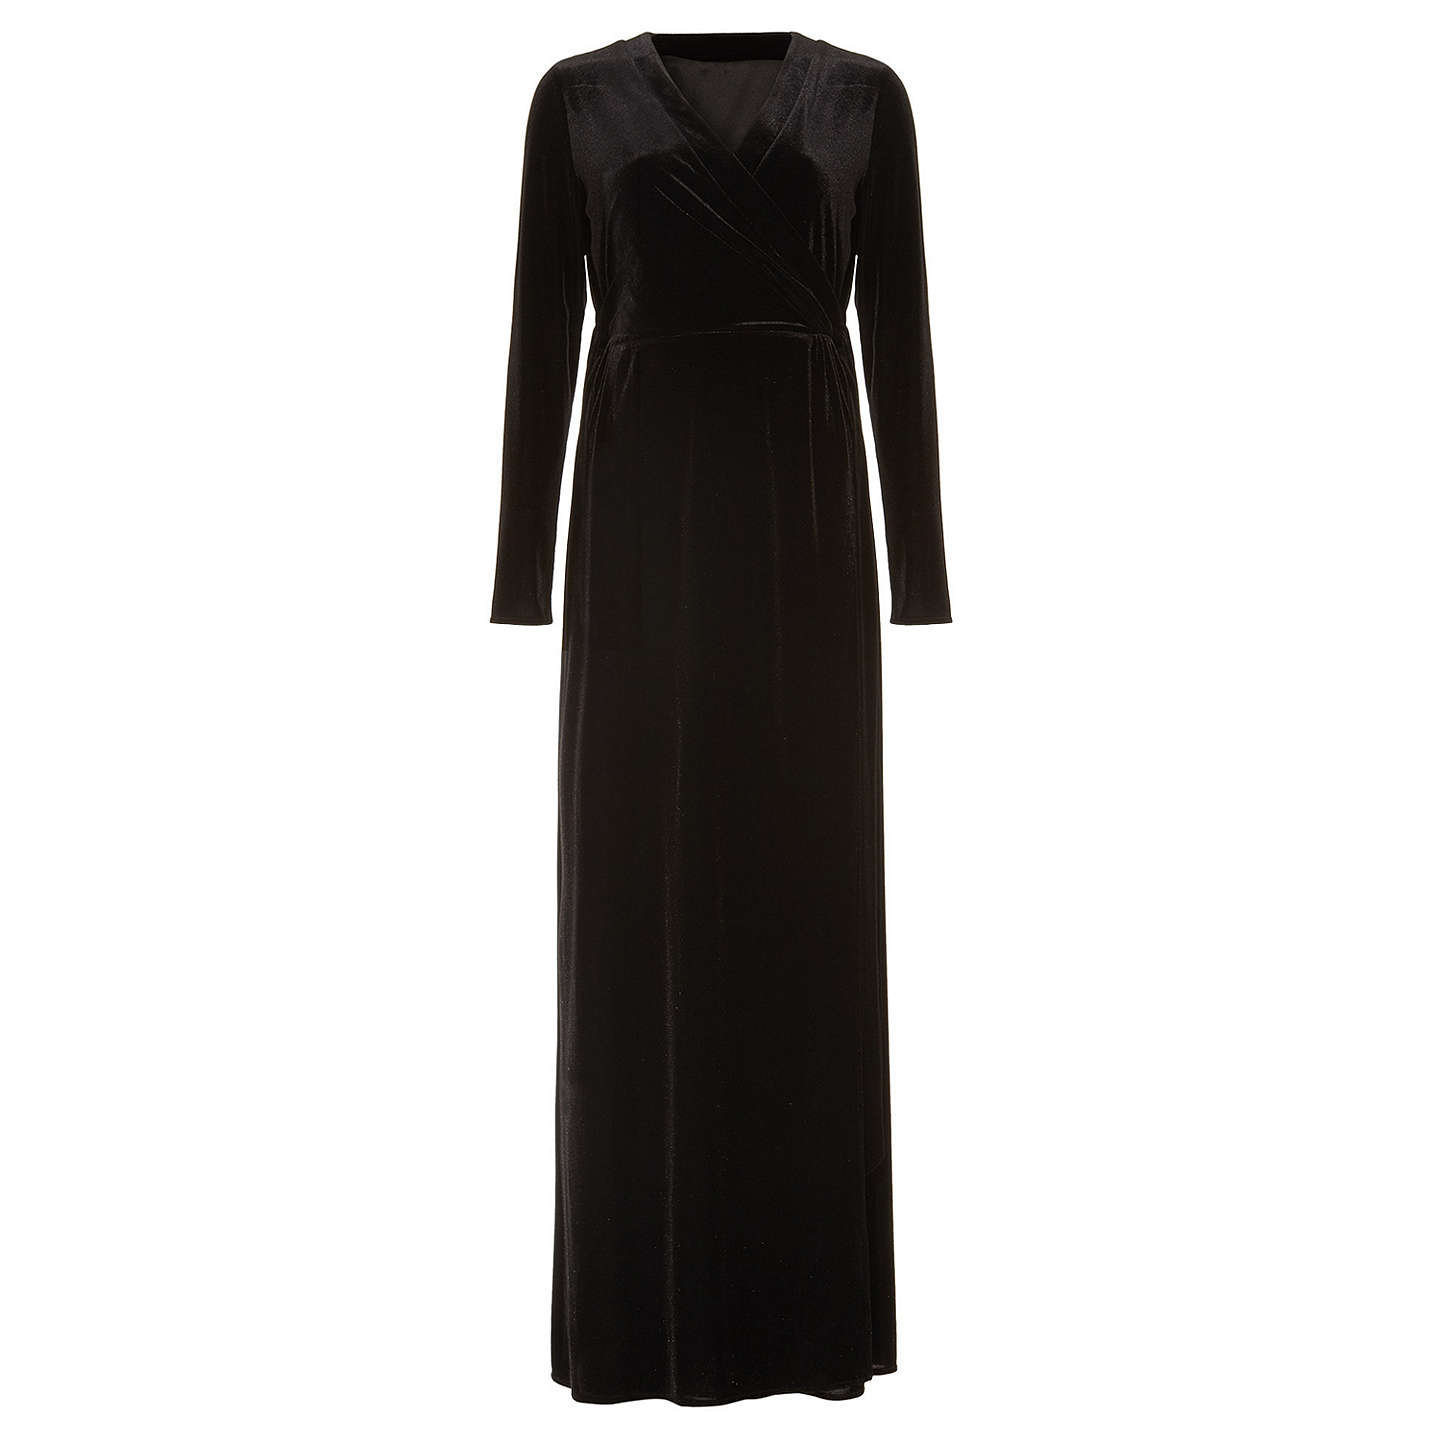 BuyPhase Eight Valeria Velvet Maxi Dress, Black, 6 Online at johnlewis.com